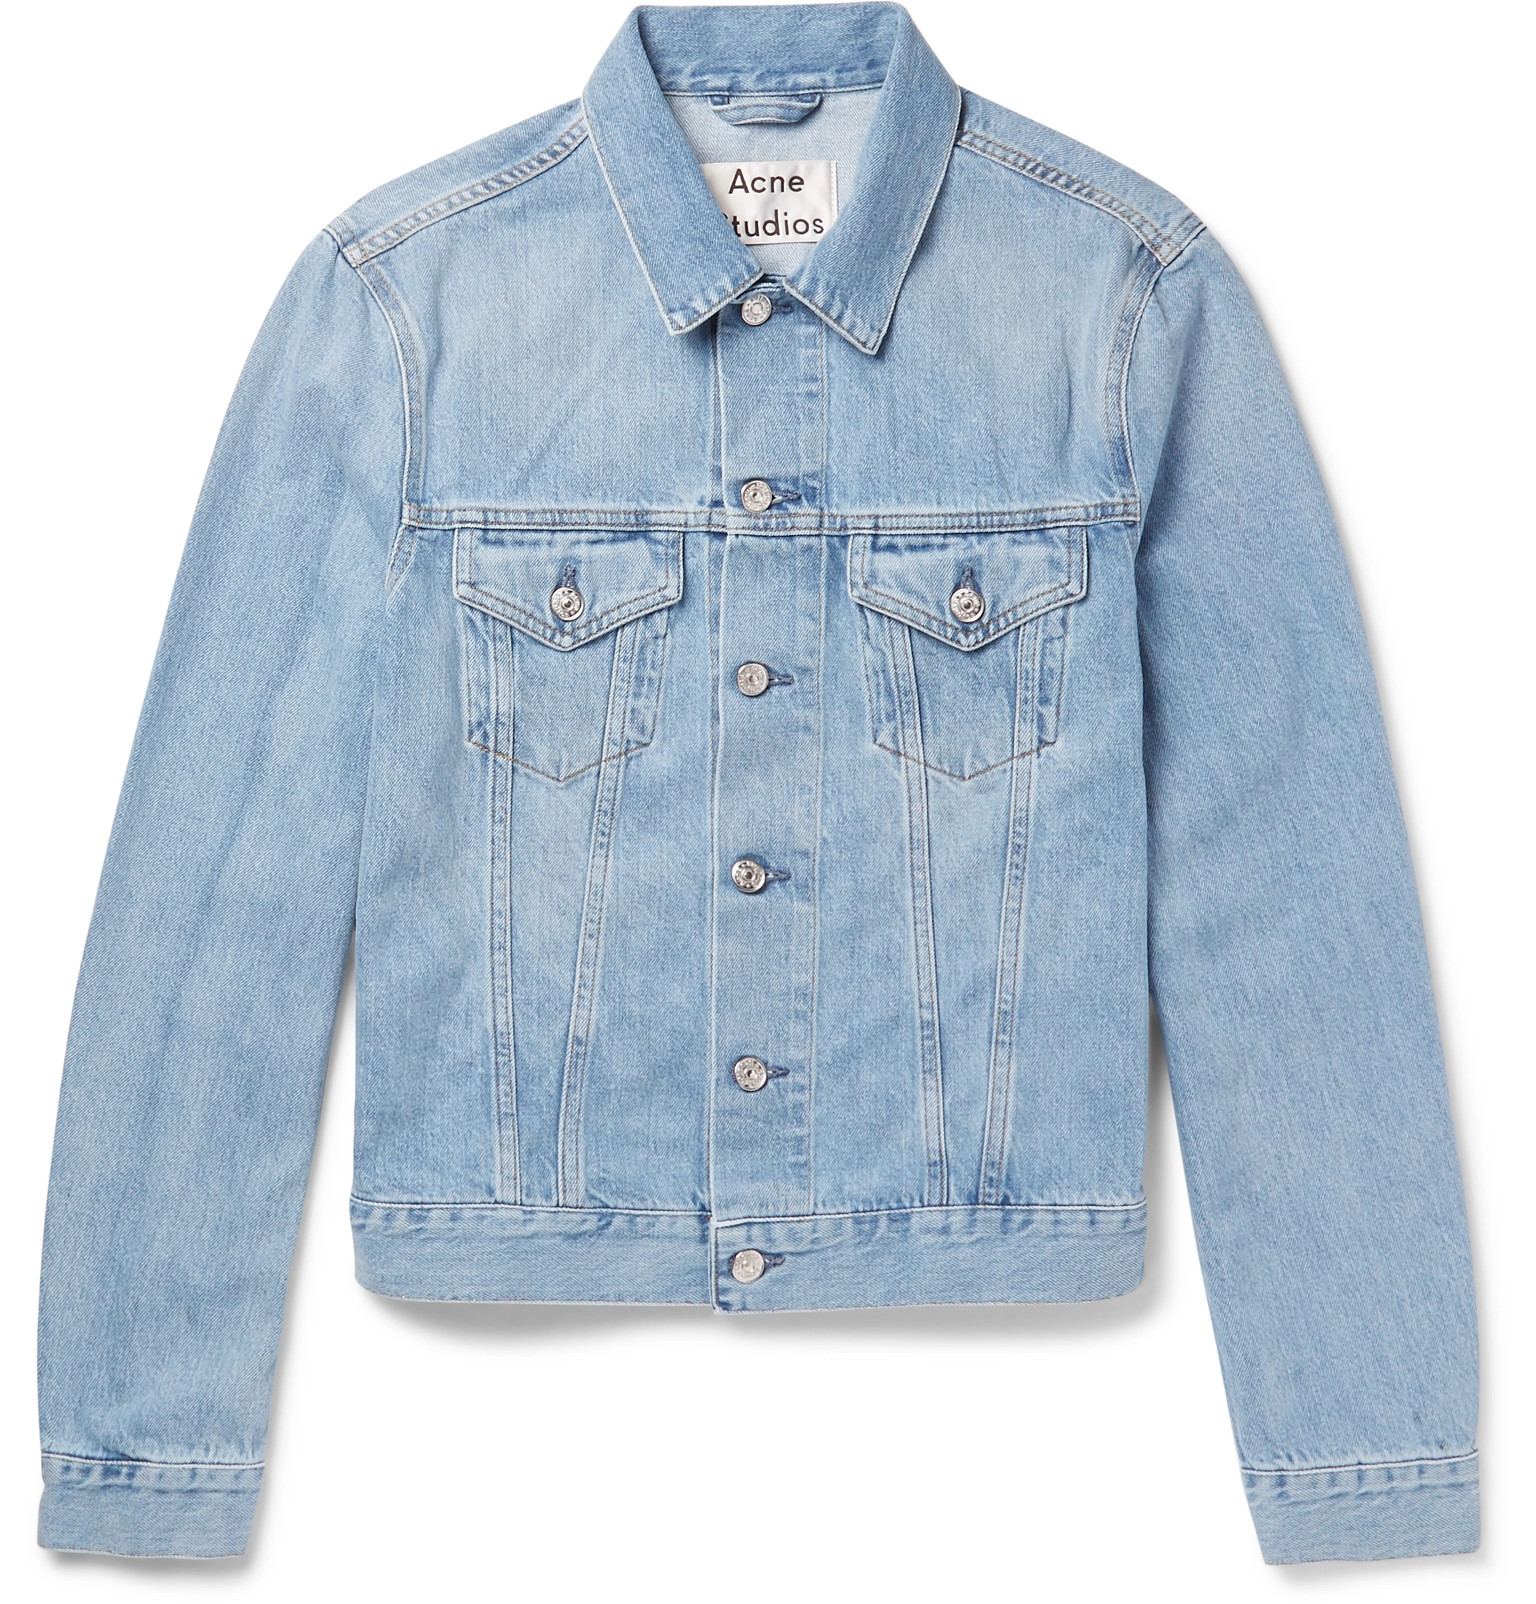 Men's Designer Denim Jackets - Shop Men's Fashion Online at MR PORTER